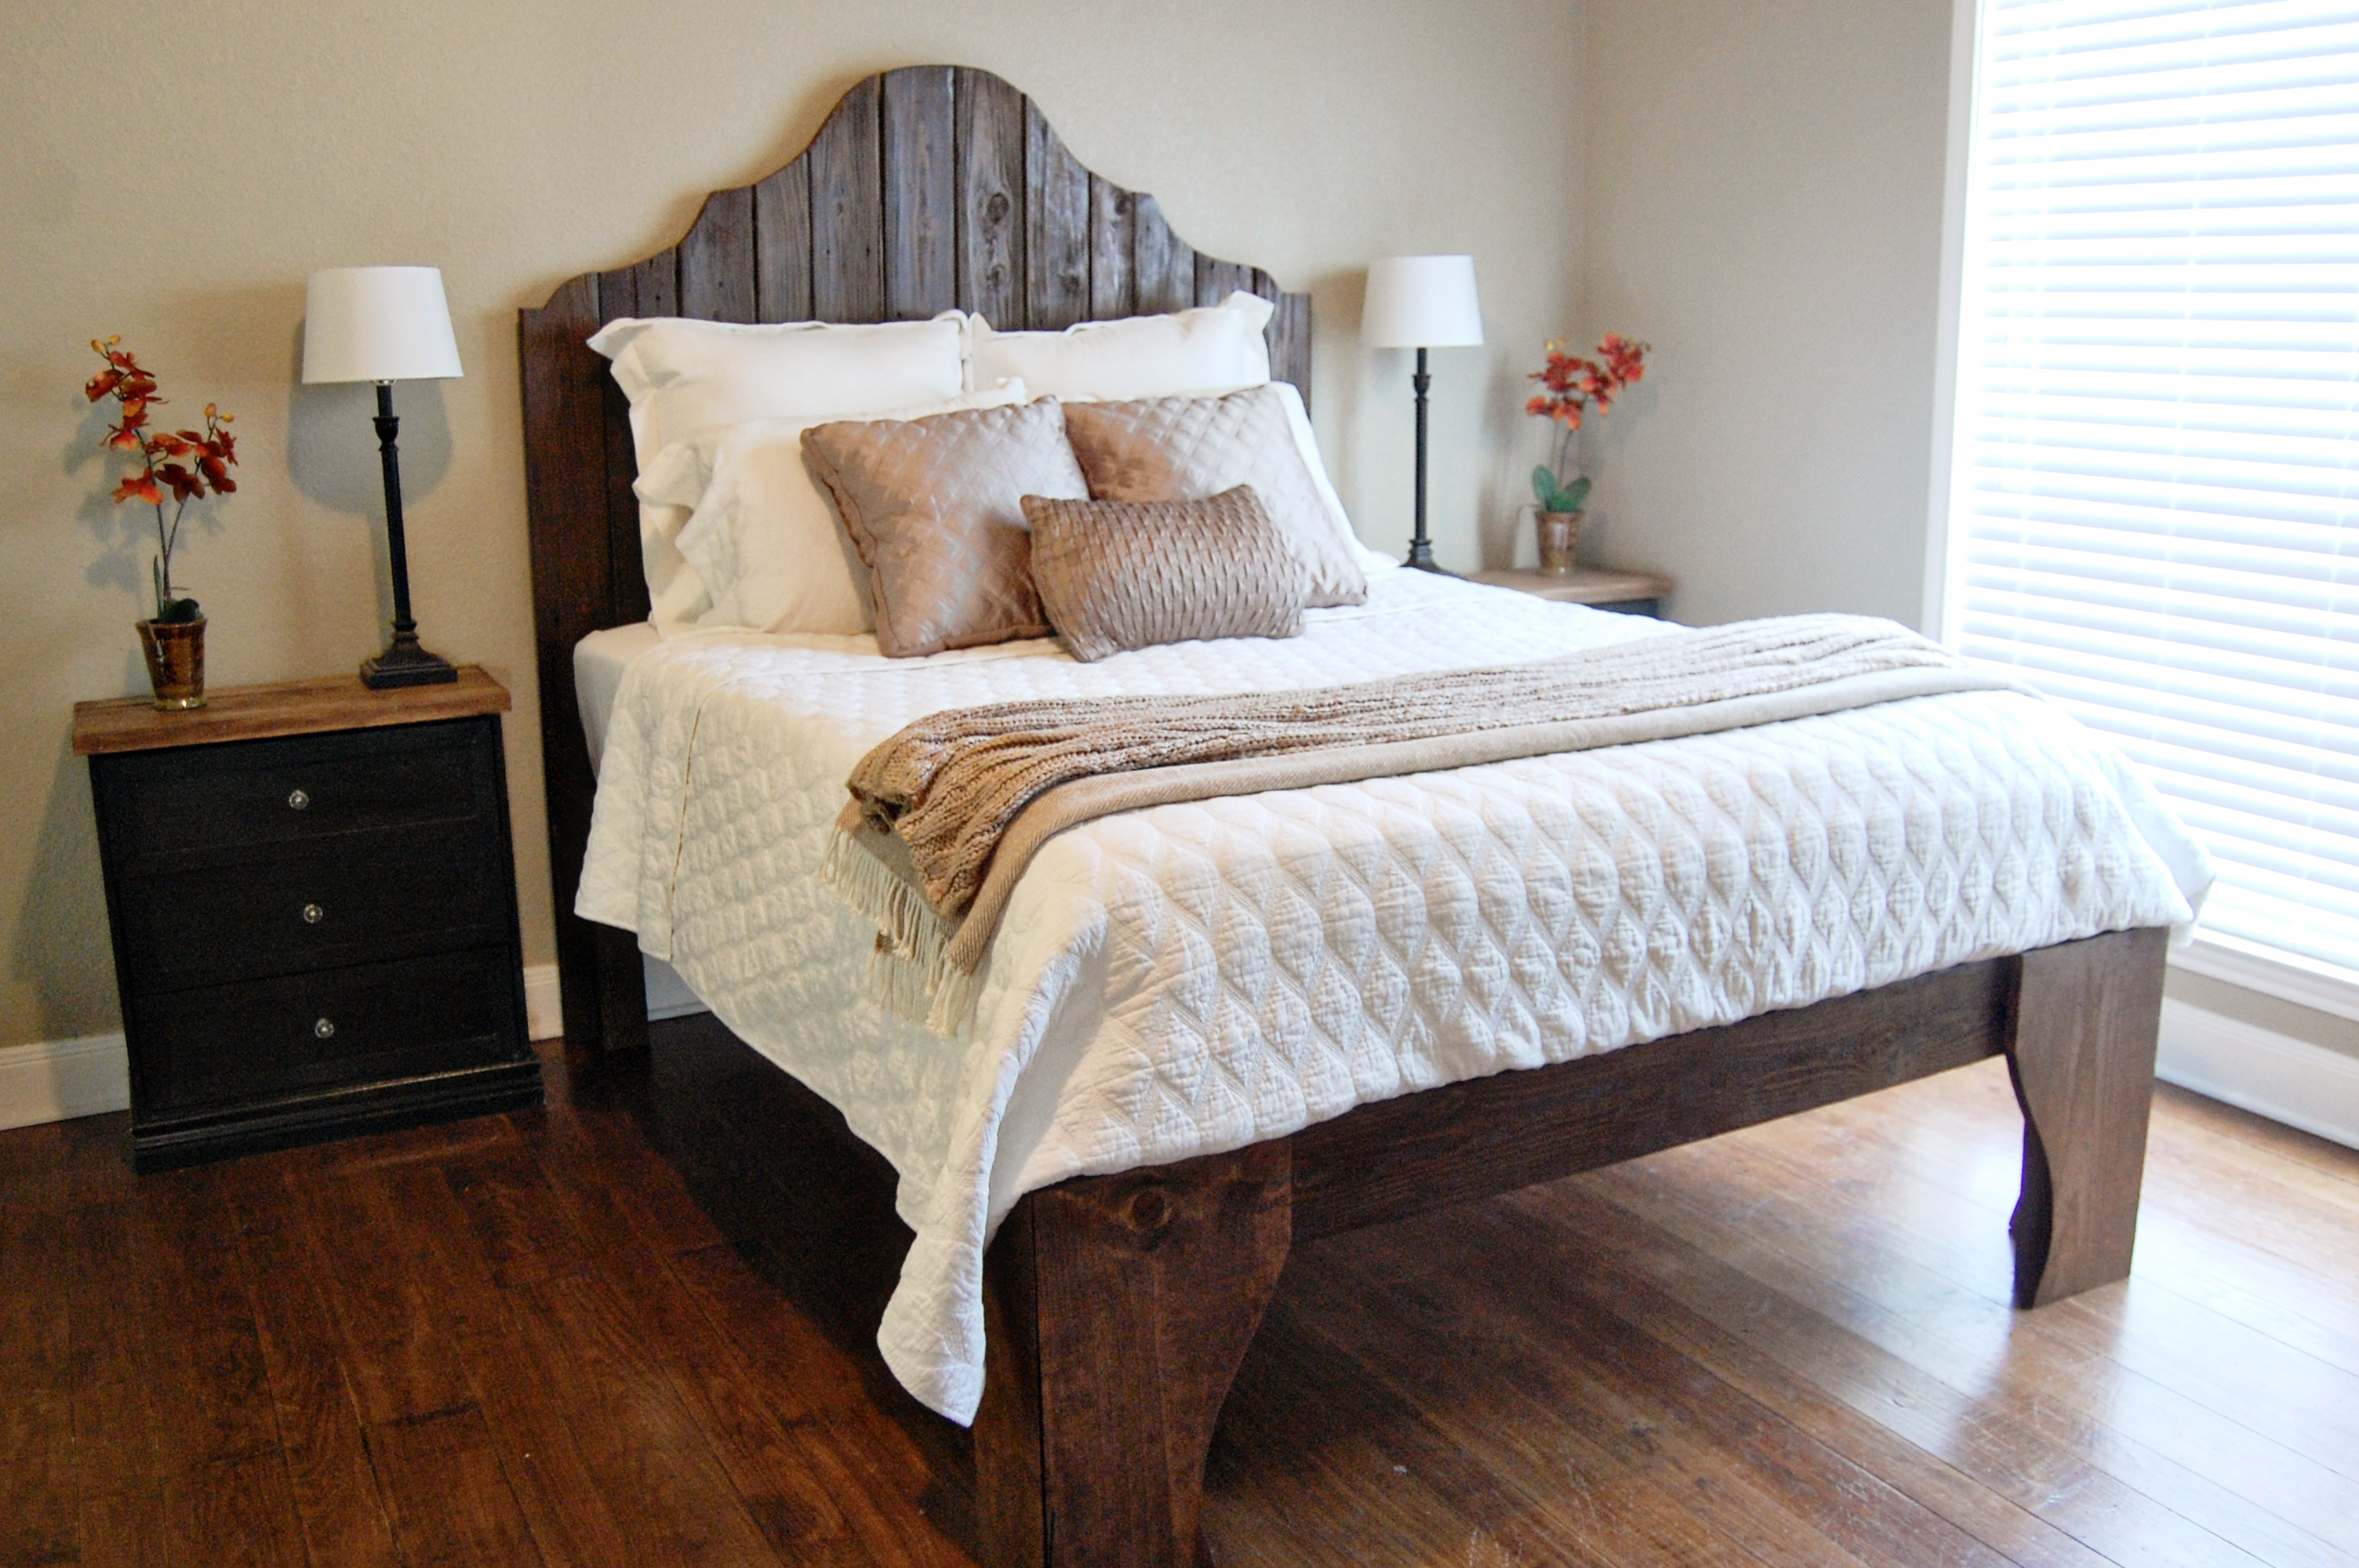 Over At The Accent Piece Youu0027ll Find This Rad Tutorial For Taking Reclaimed  Wood And Turning It Into A Beautiful Bed, With A Headboard!